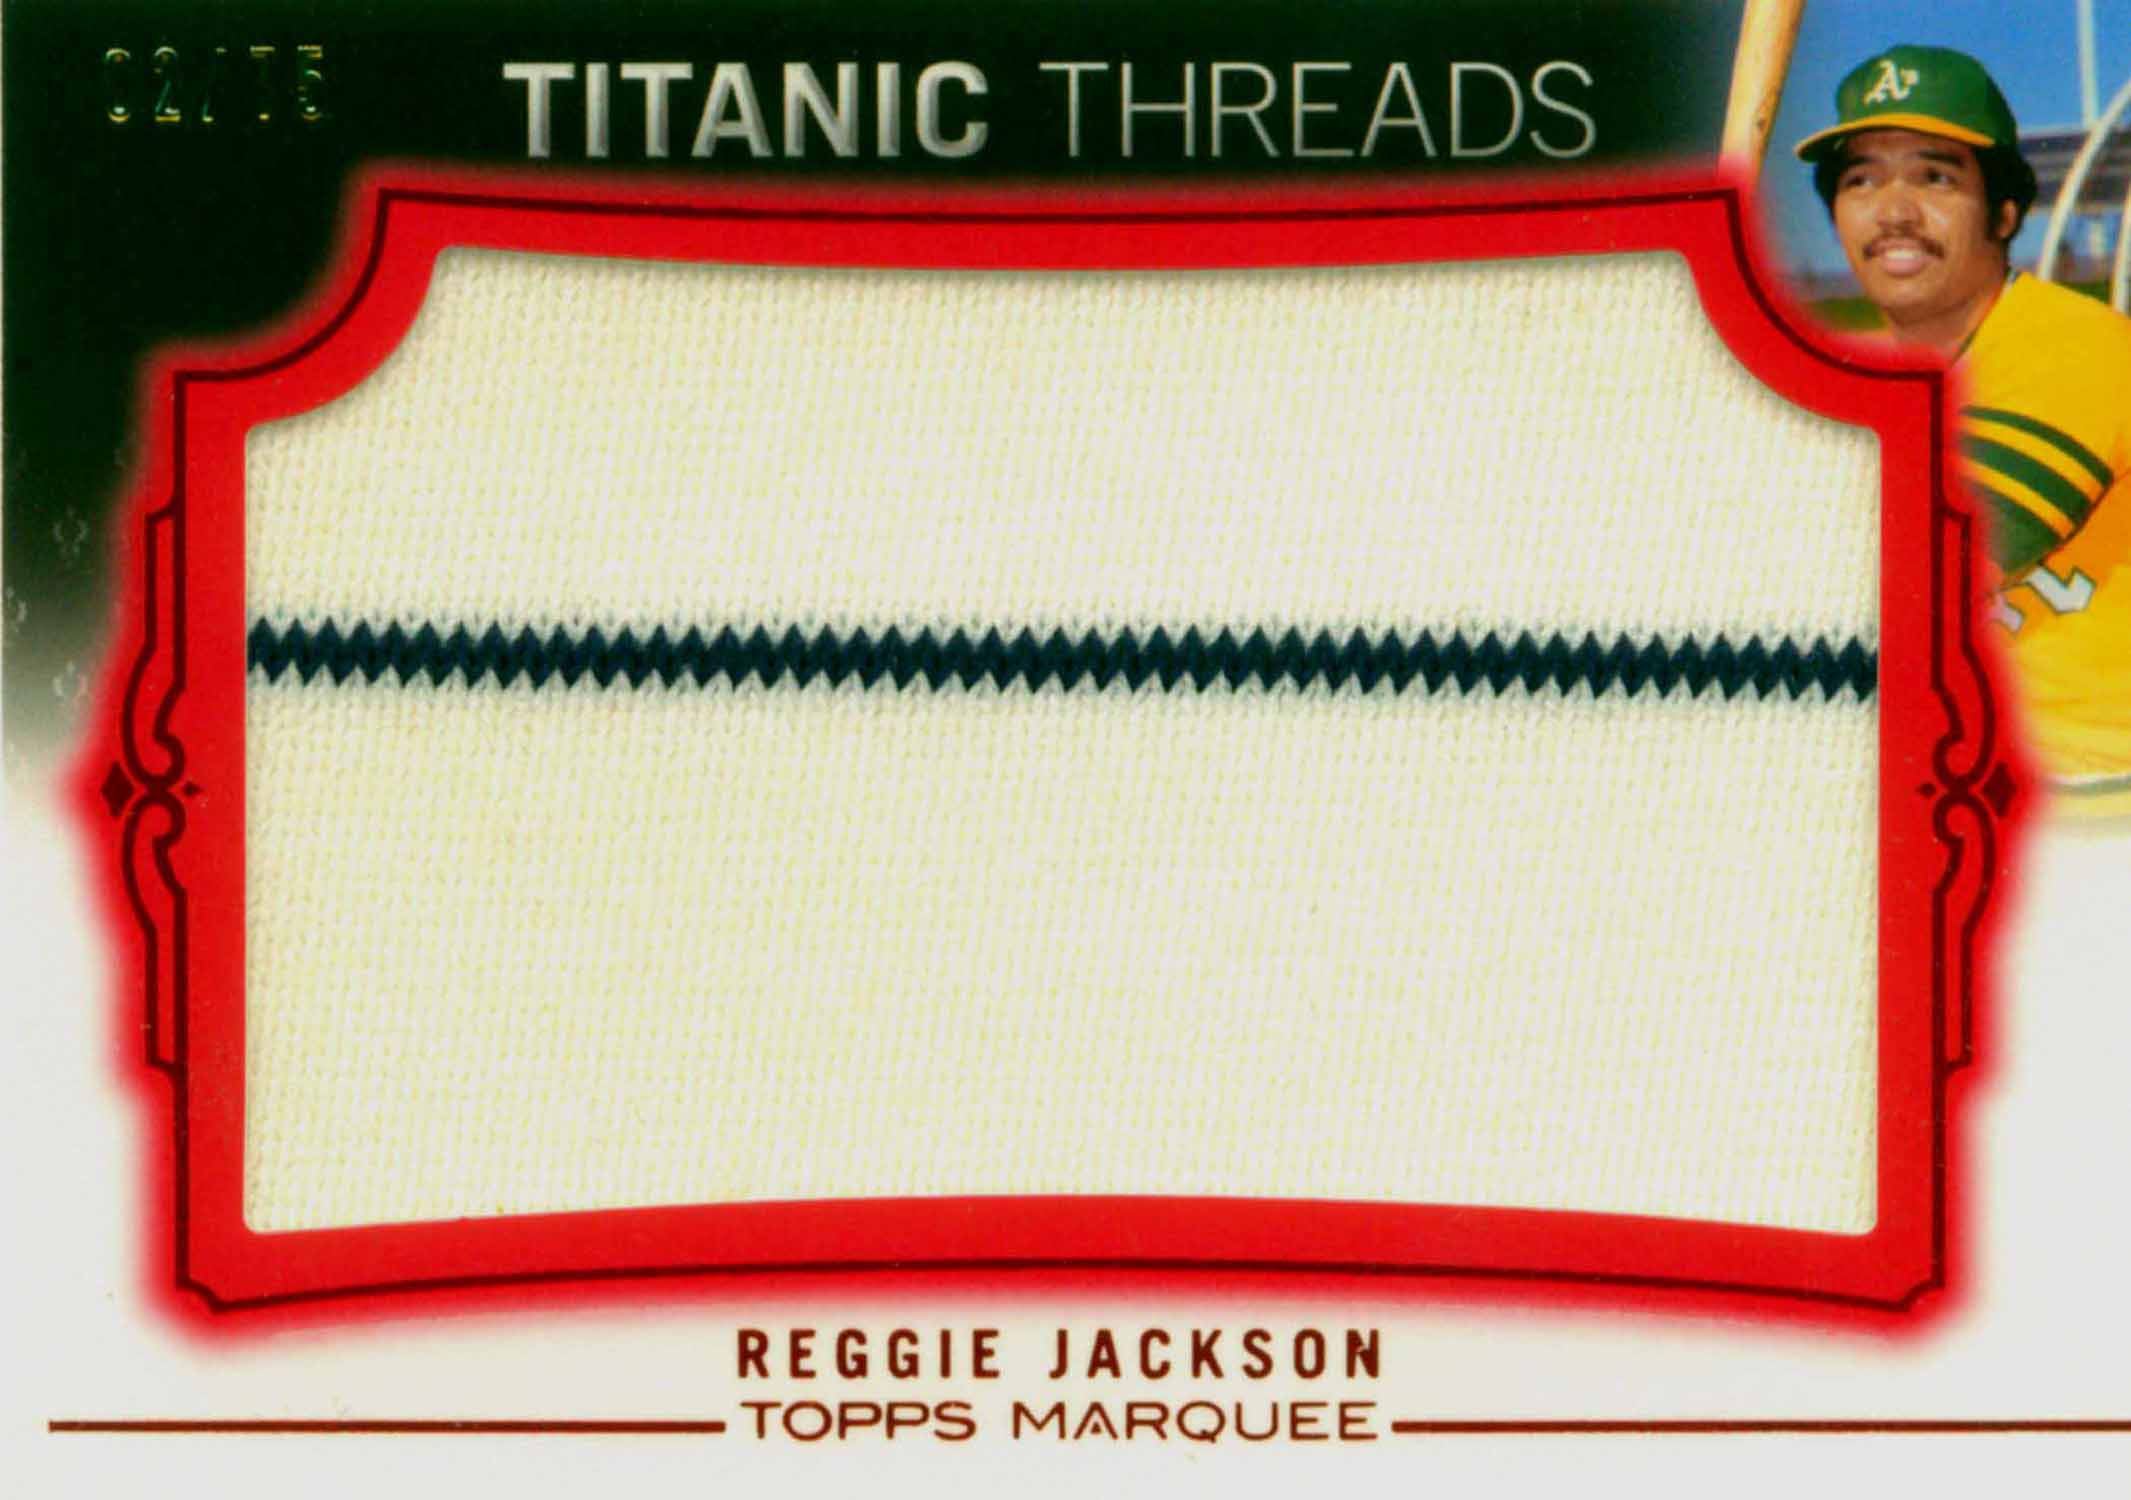 2011 Topps Marquee Titanic Threads Red